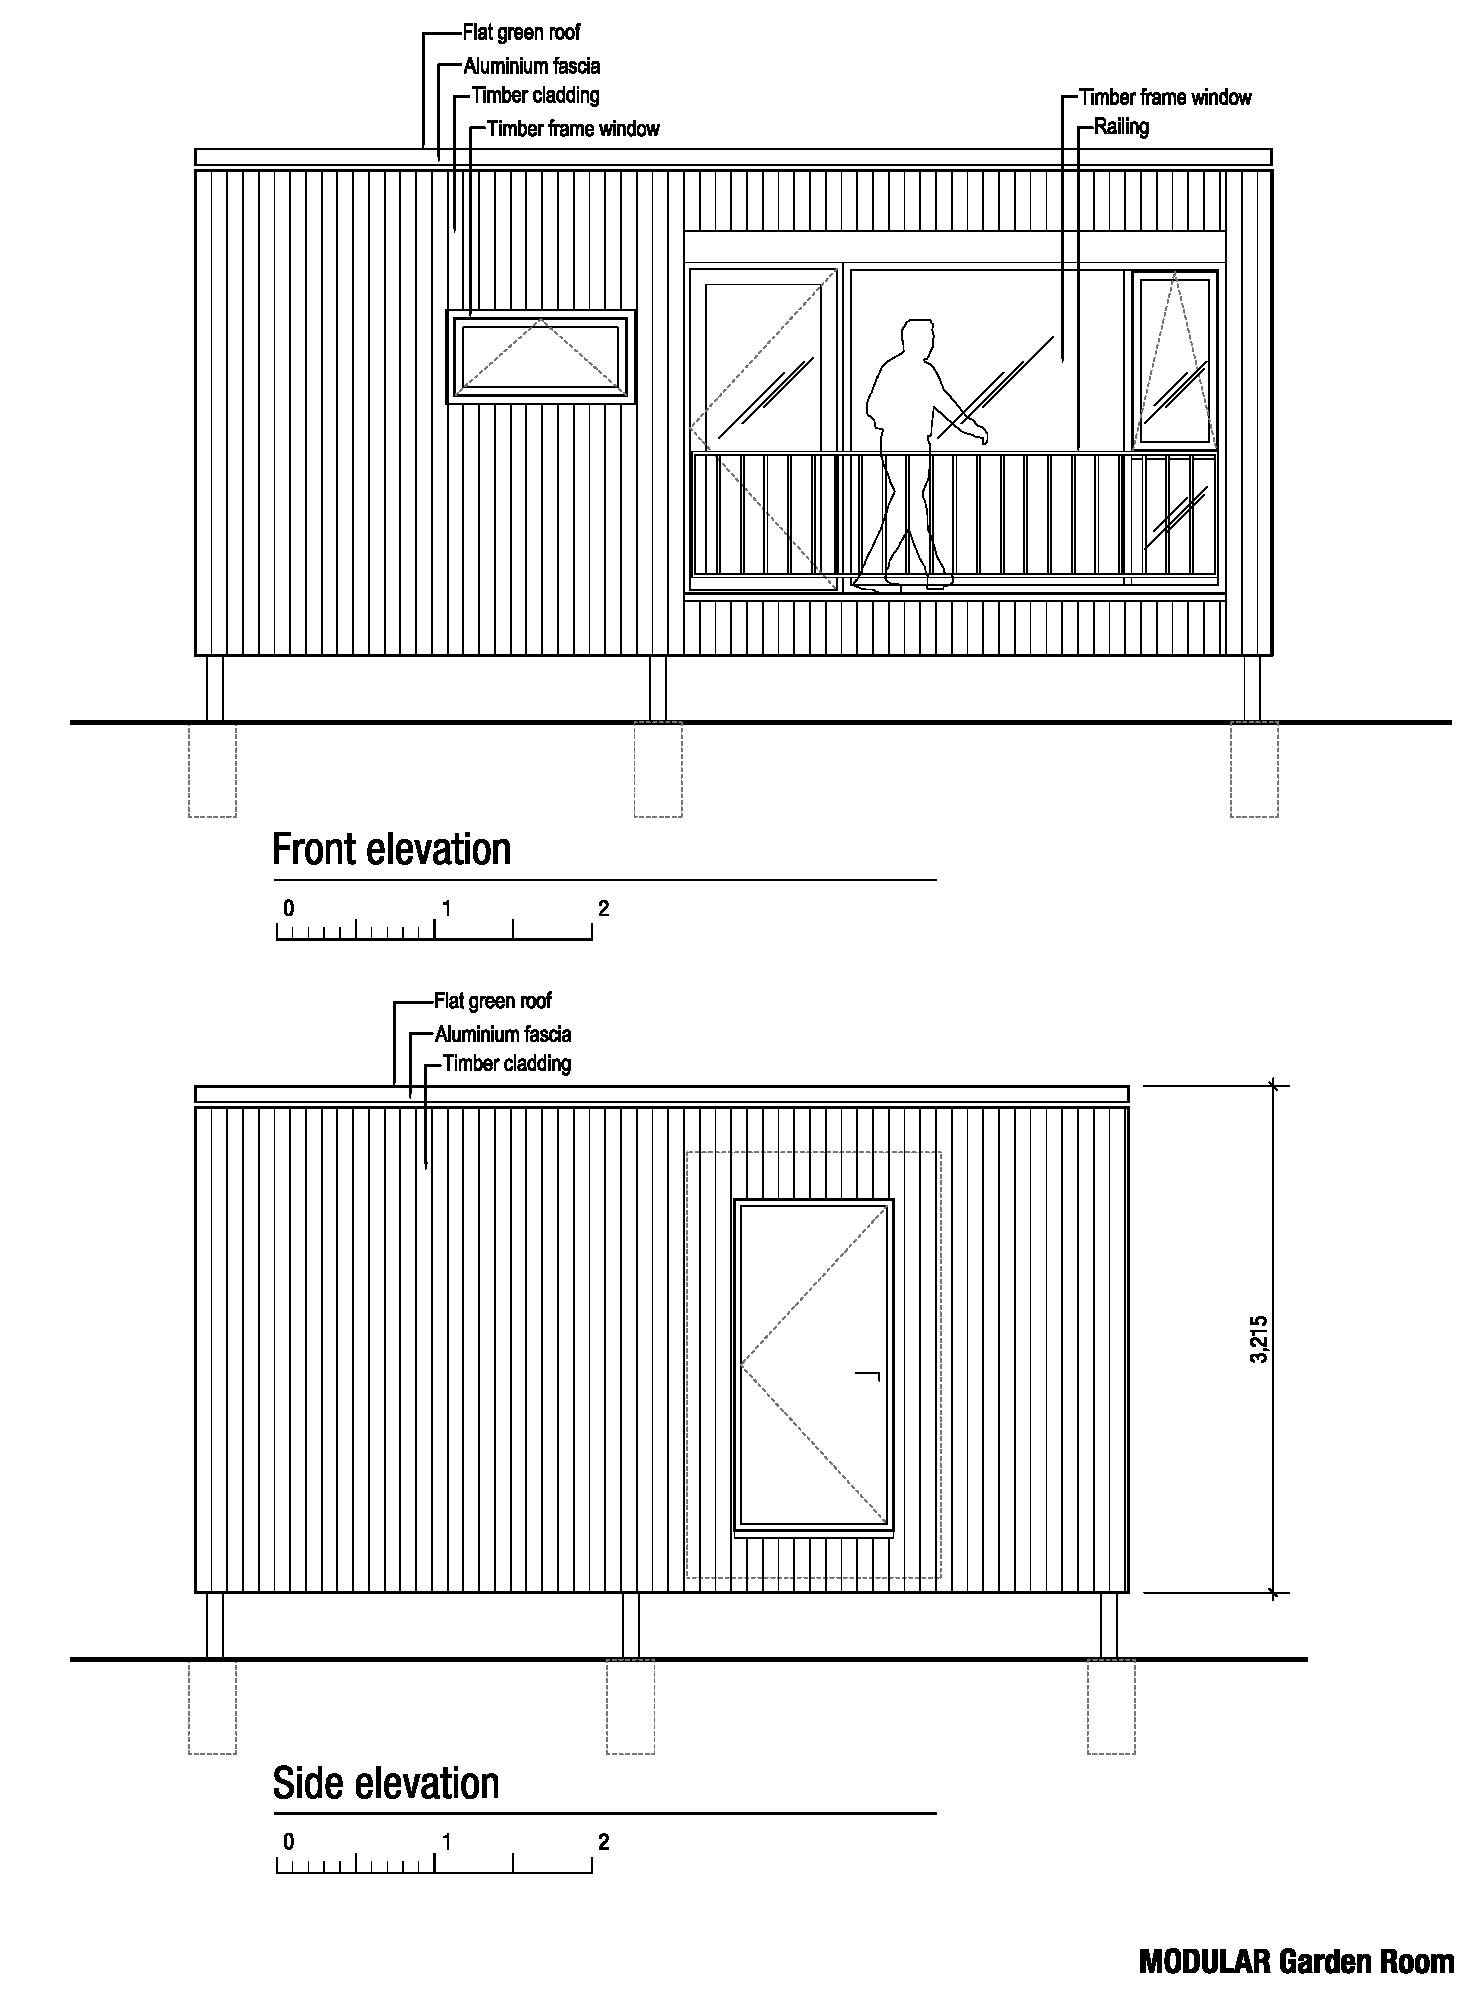 Front & side elevations